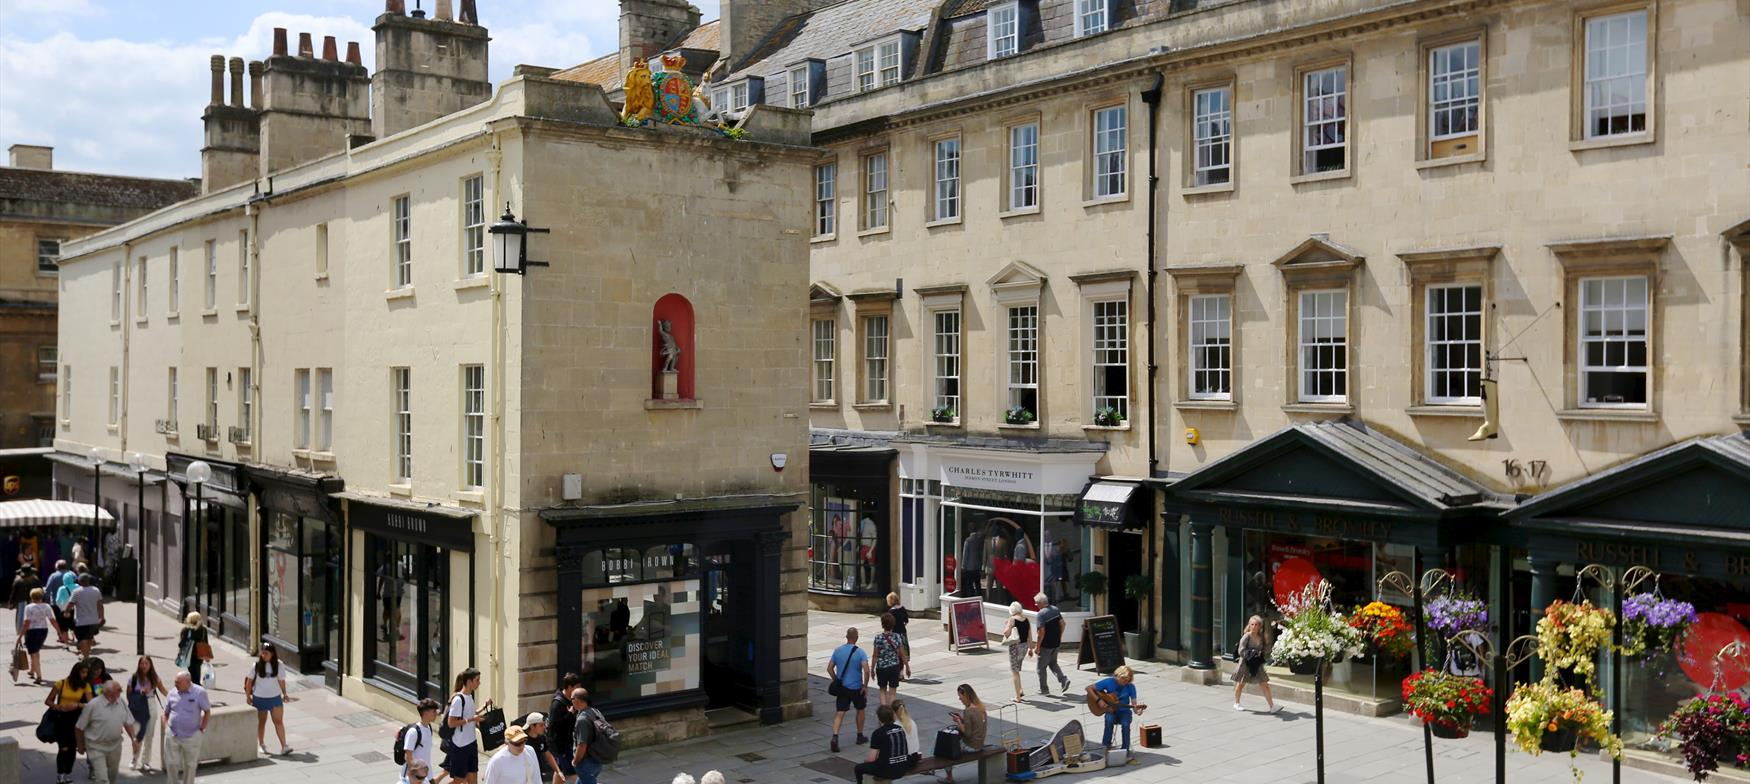 Shop in style in Bath